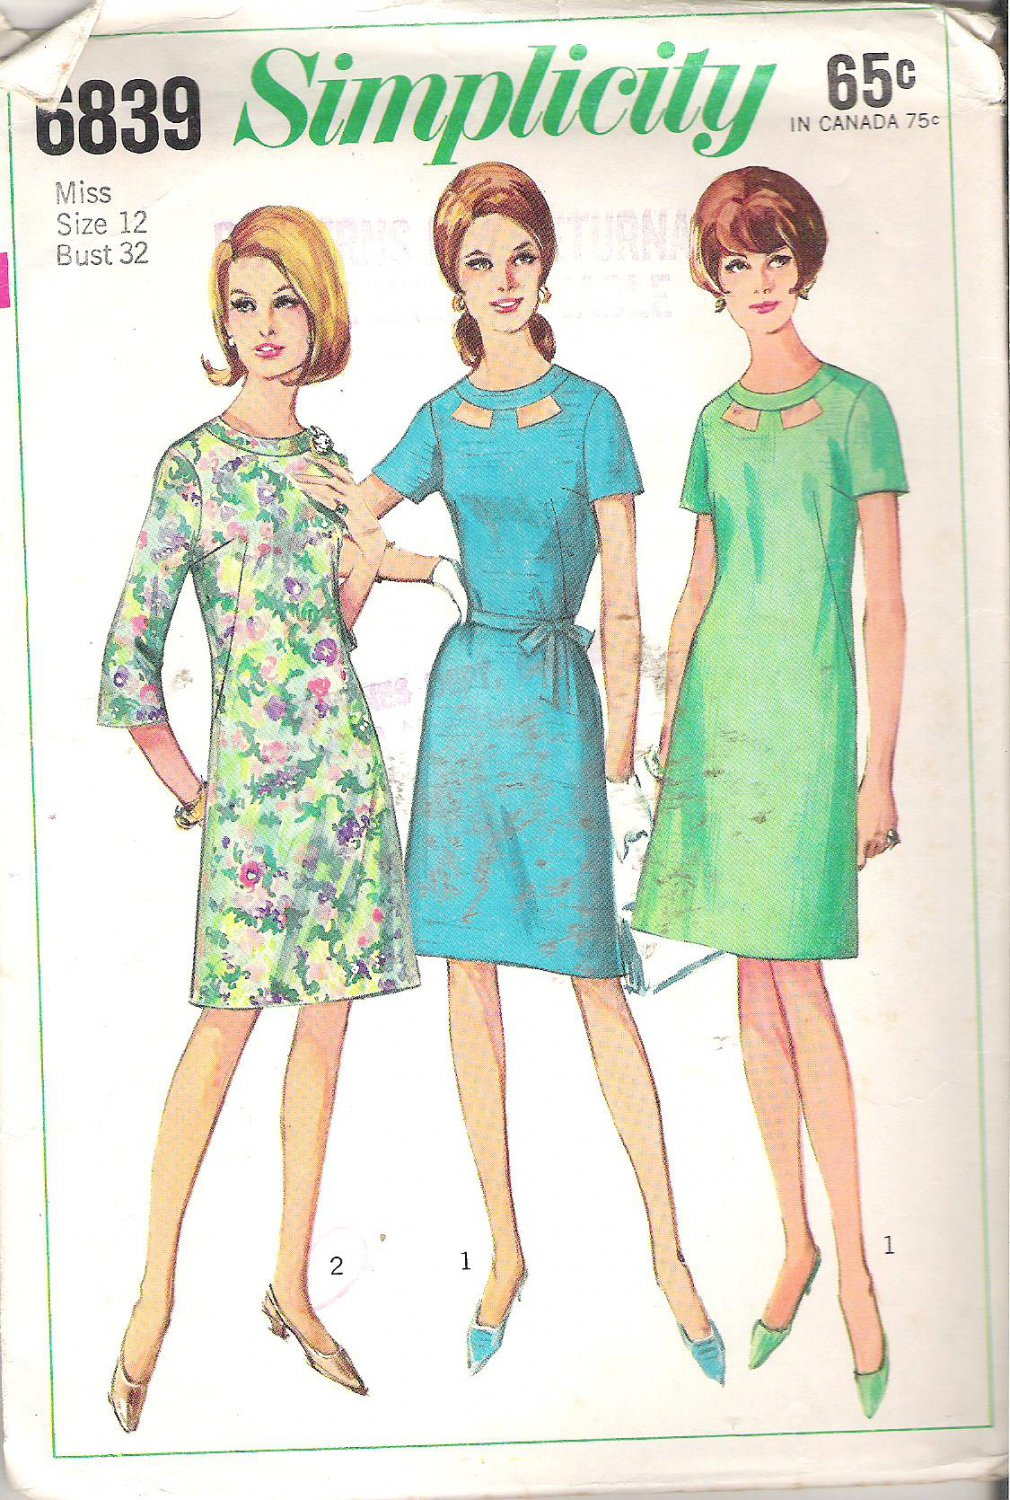 Simplicity 6839 (1966) Vintage Pattern A-line Dress High Neck Peek-a-Boo Band Size 12 Cut